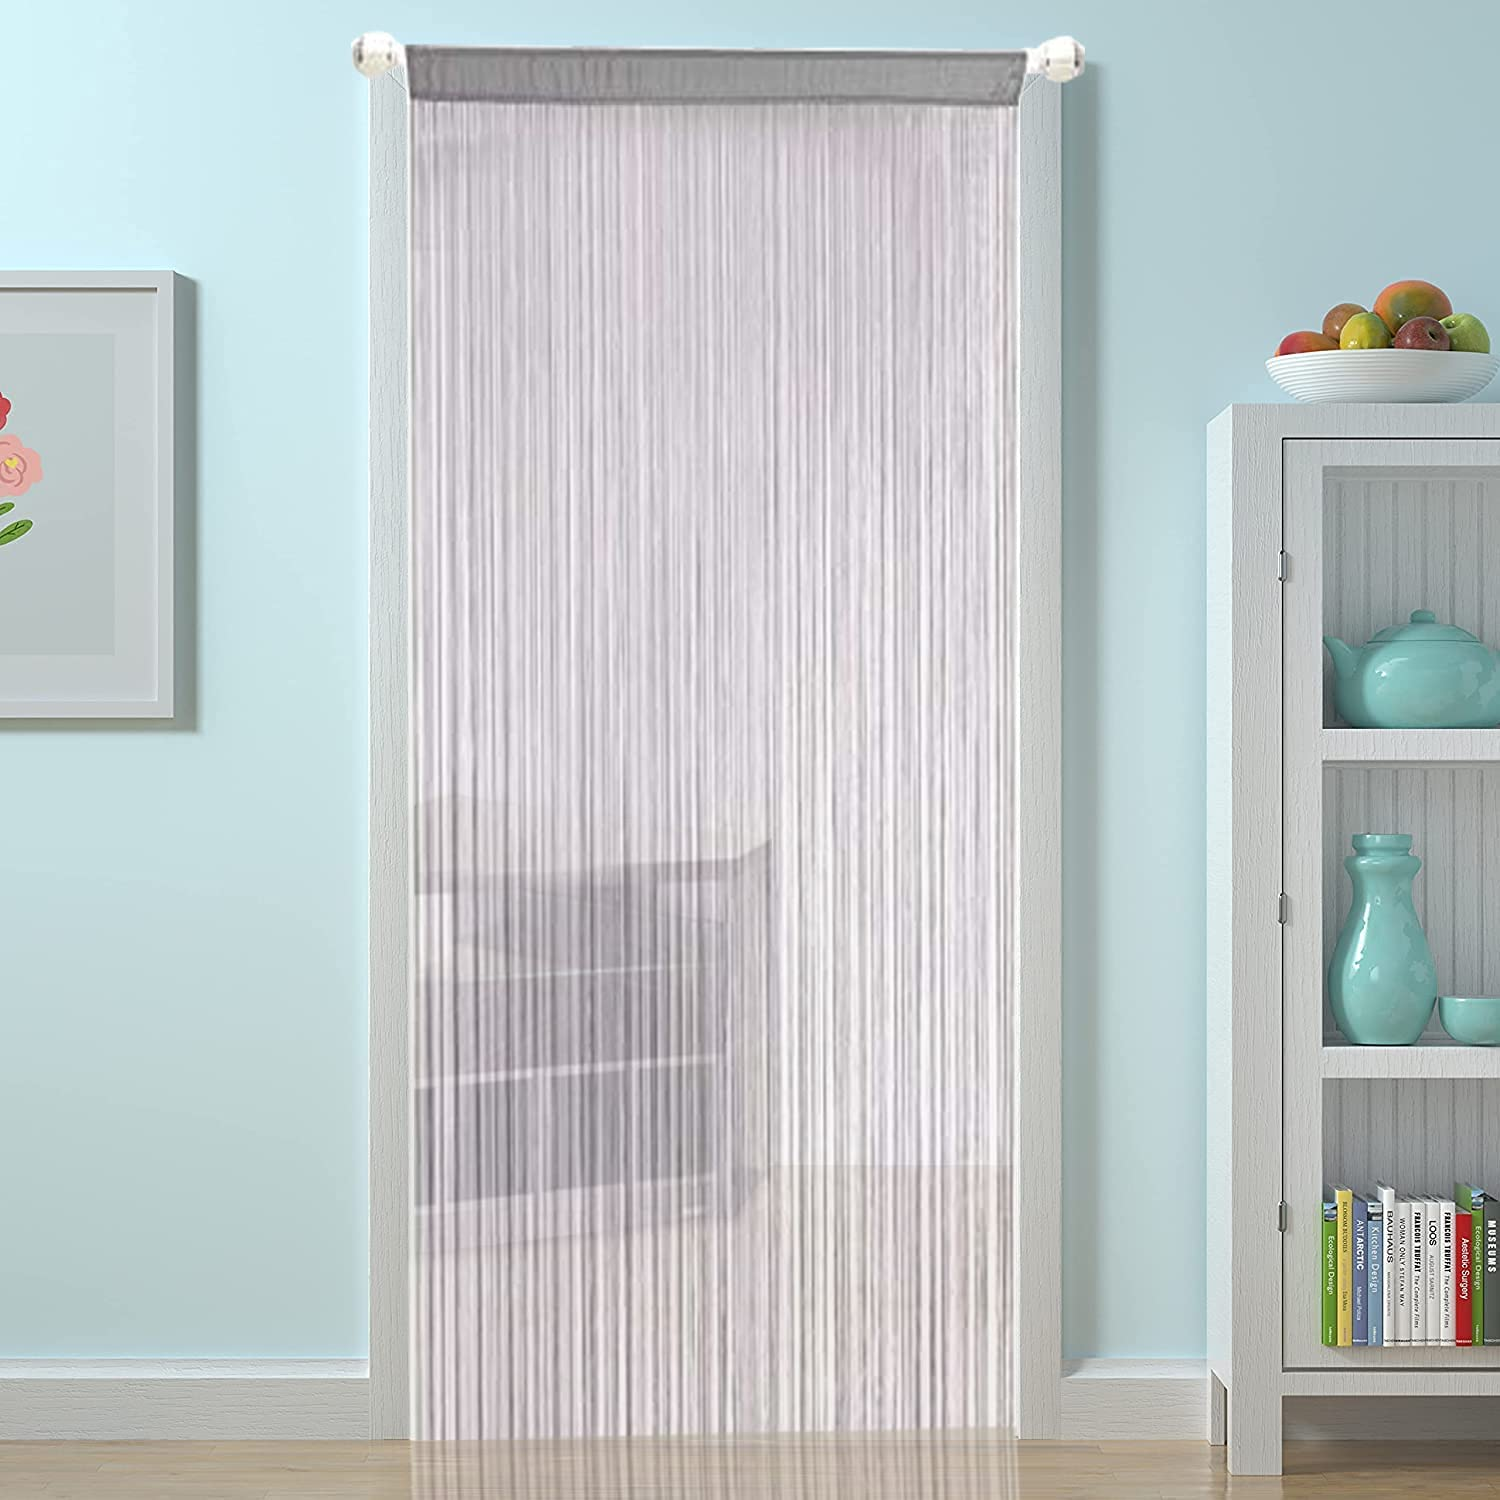 Buy HSYLYM String Curtains for Kitchen Grey Curtains Room Divider ...